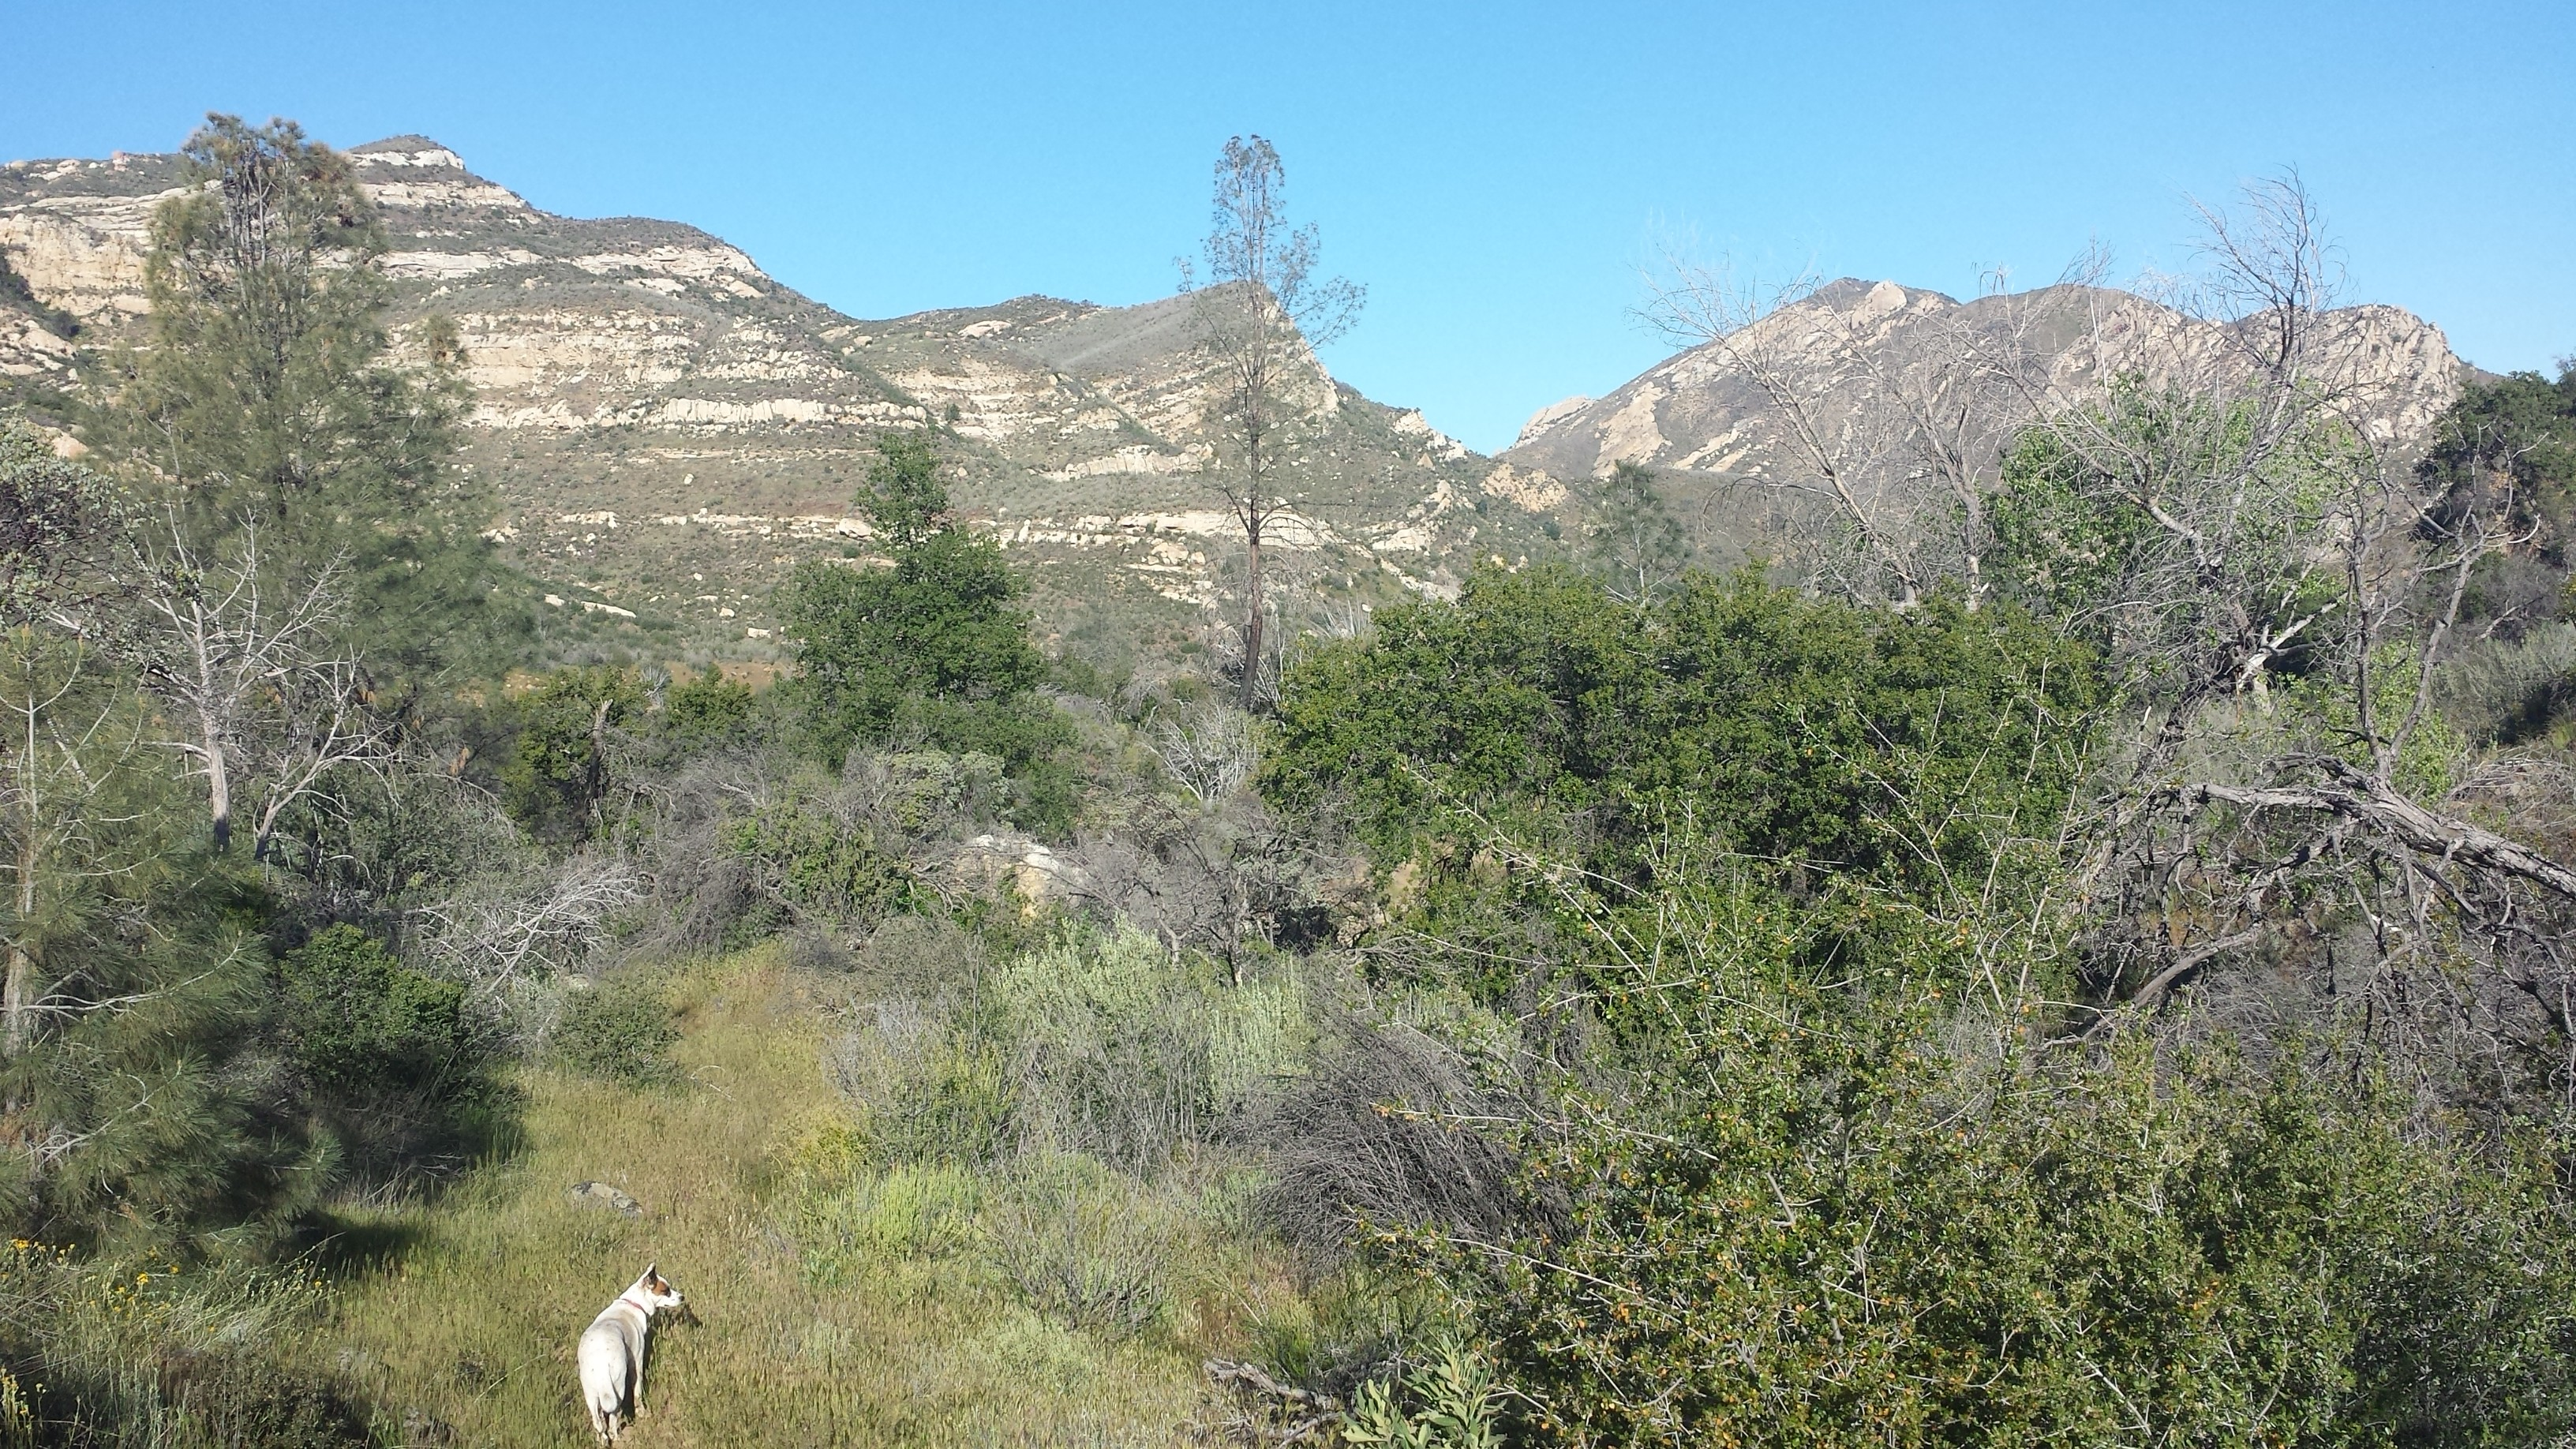 Los-Padres-National-Forest-San-Rafael-Wilderness-133Sisquoc-River-Trail